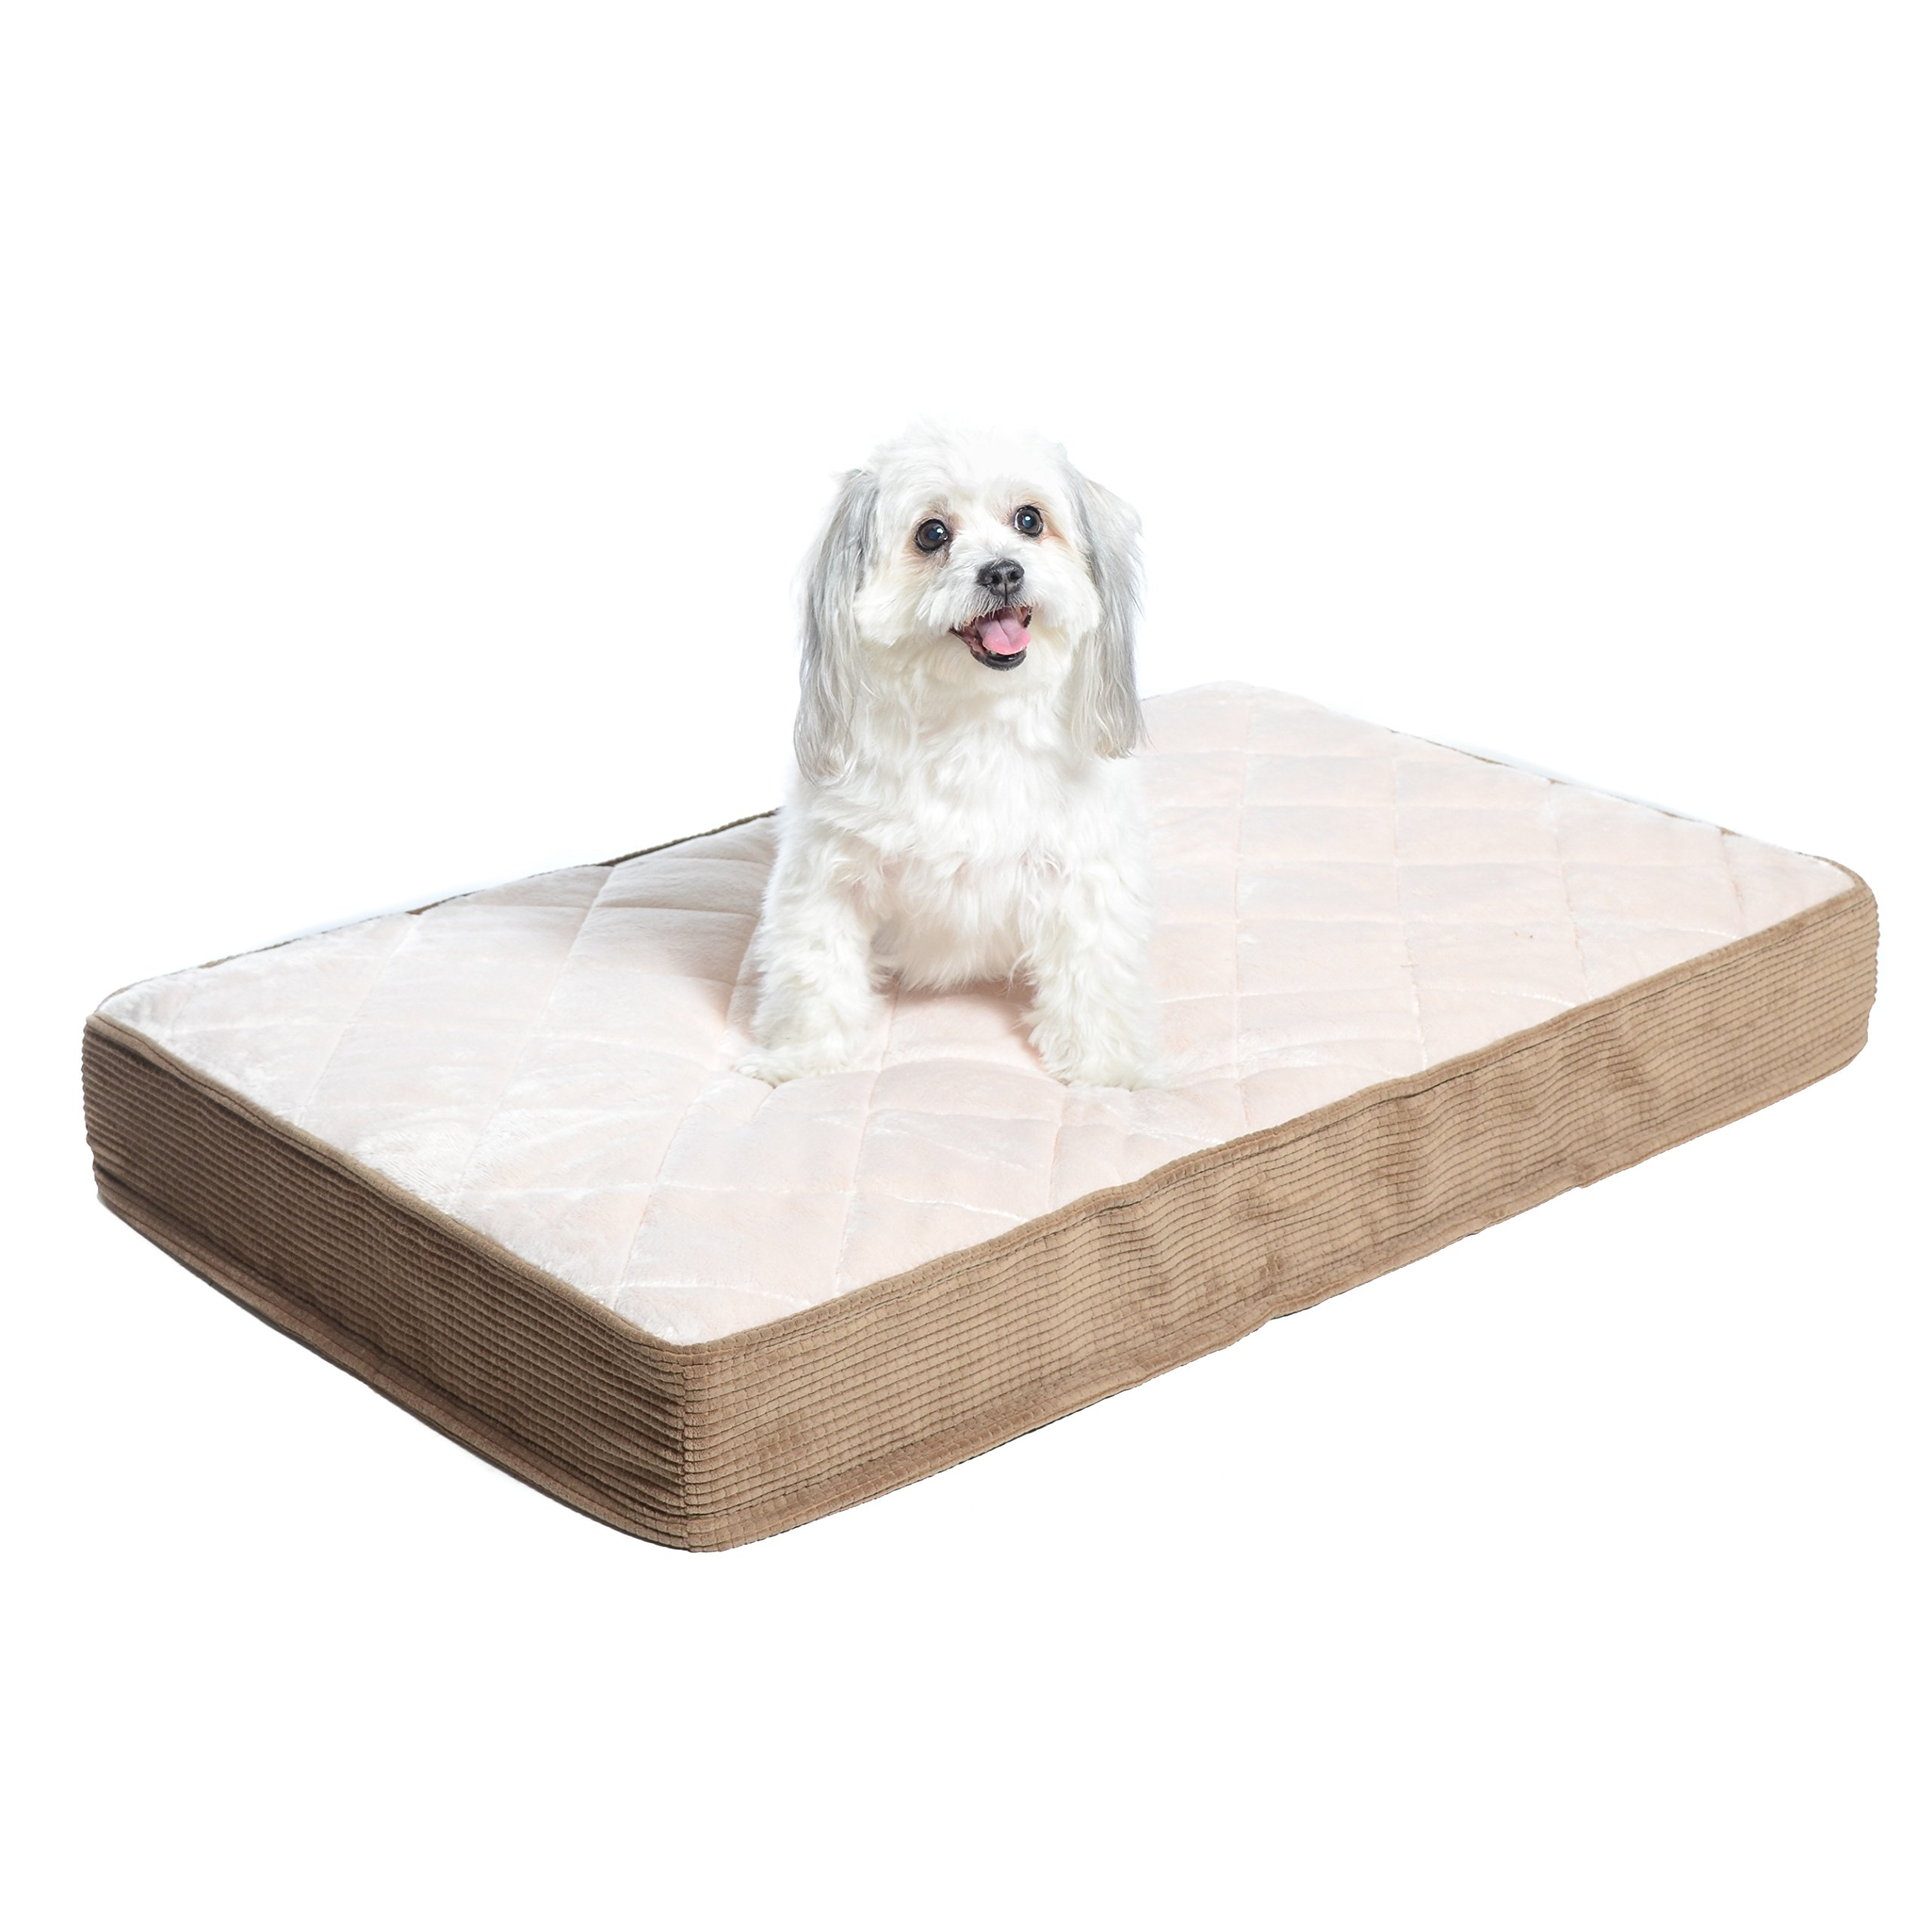 Milliard Quilted Padded Orthopedic Dog Bed, Egg Crate Foam with Plush Pillow Top Washable Cover (35 inches x 22 inches x 4 inches) by Milliard